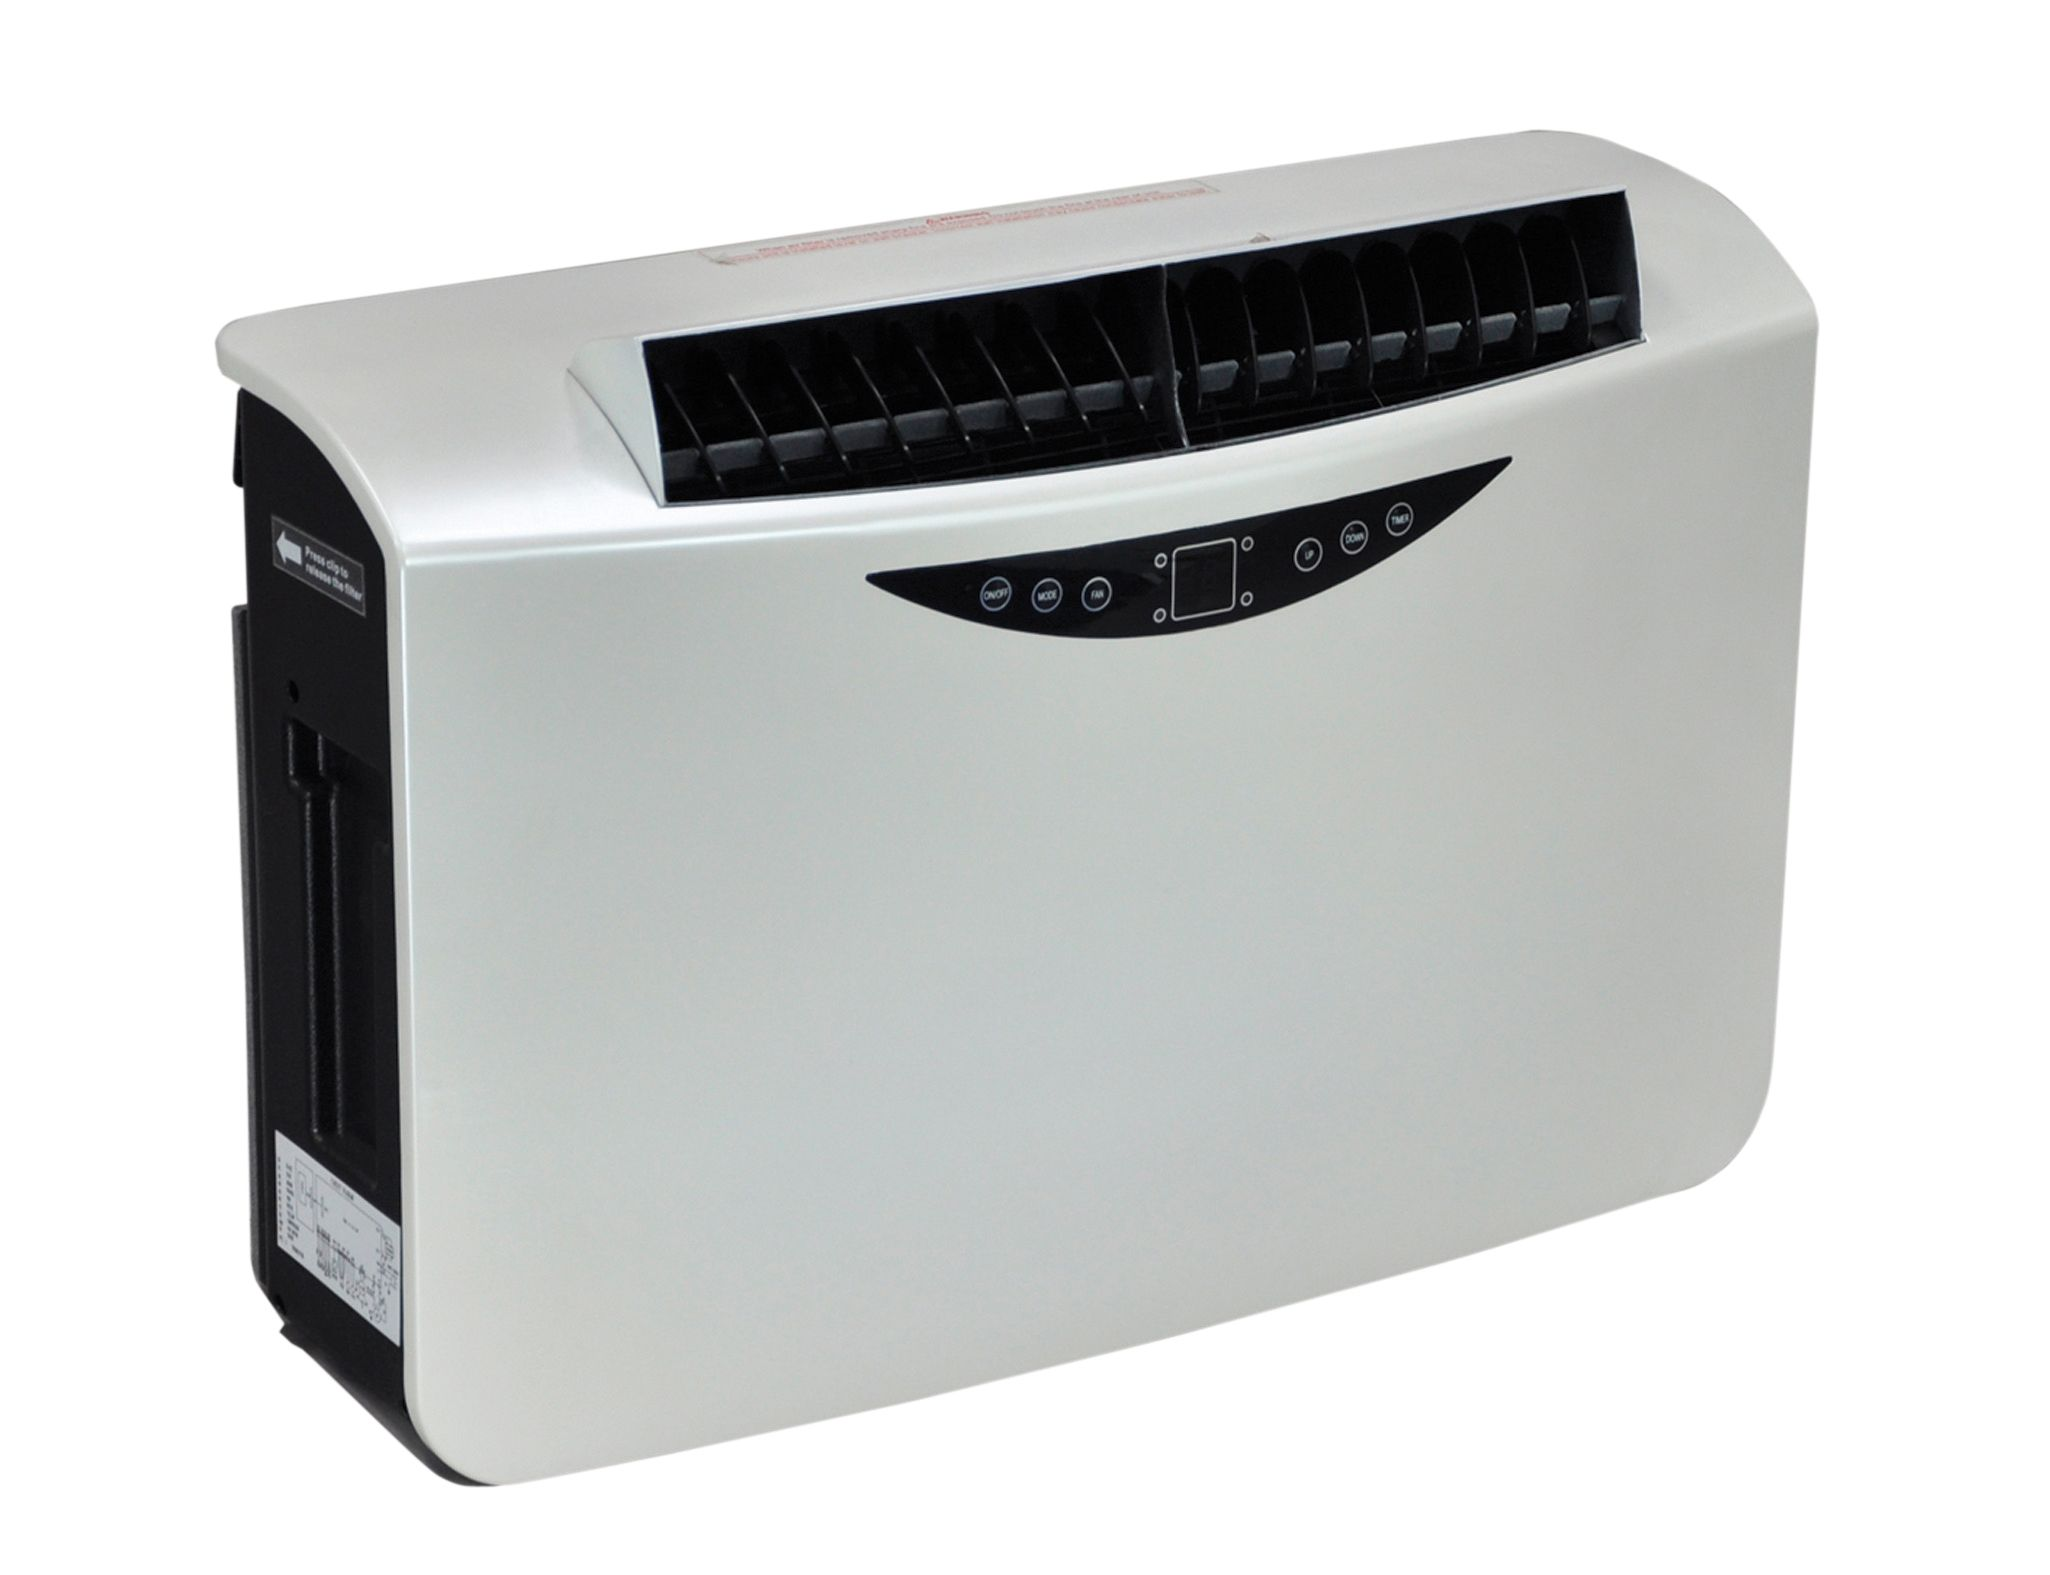 electrovision 10000 btu wall mounted air conditioner with